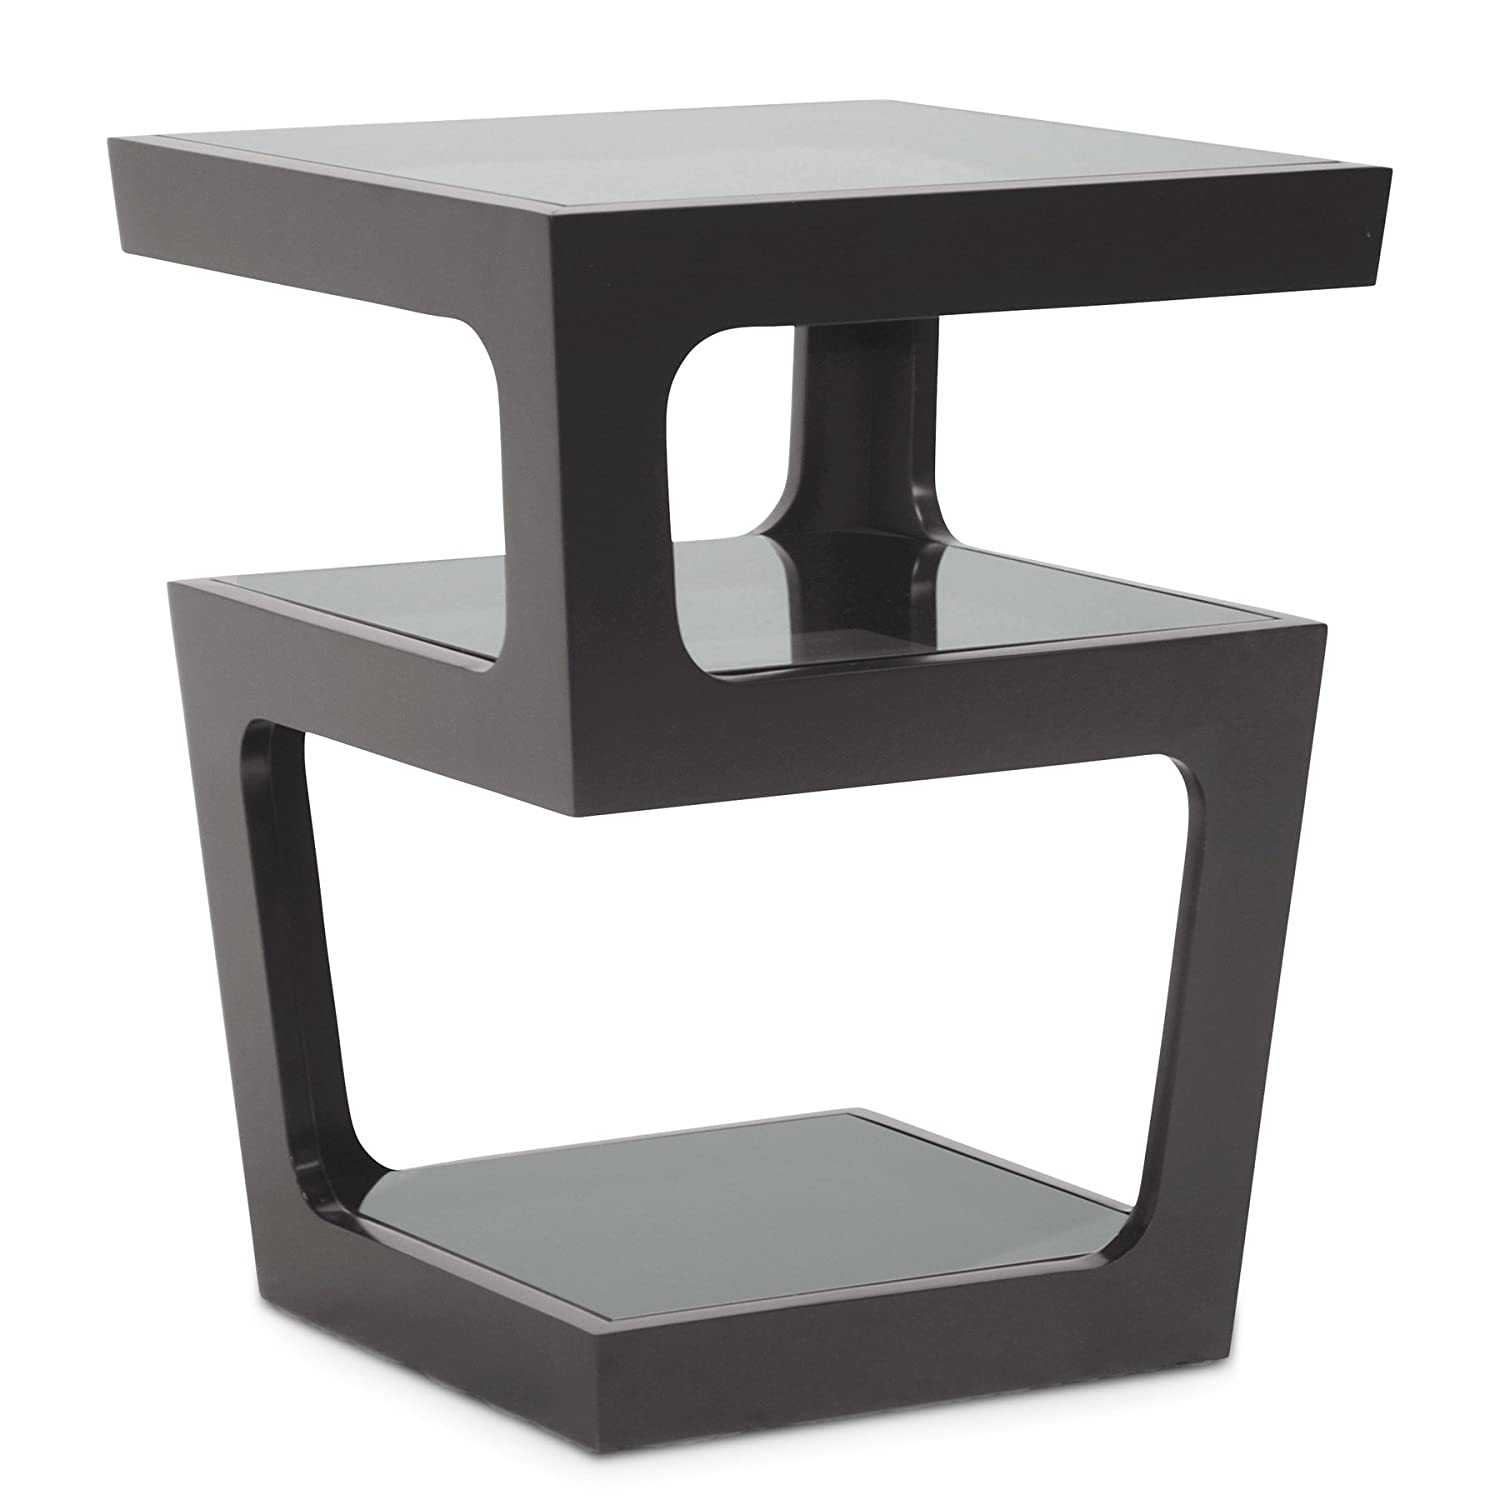 amazoncom baxton studio clara modern end table with tiered glassshelves black kitchen  dining. amazoncom baxton studio clara modern end table with tiered